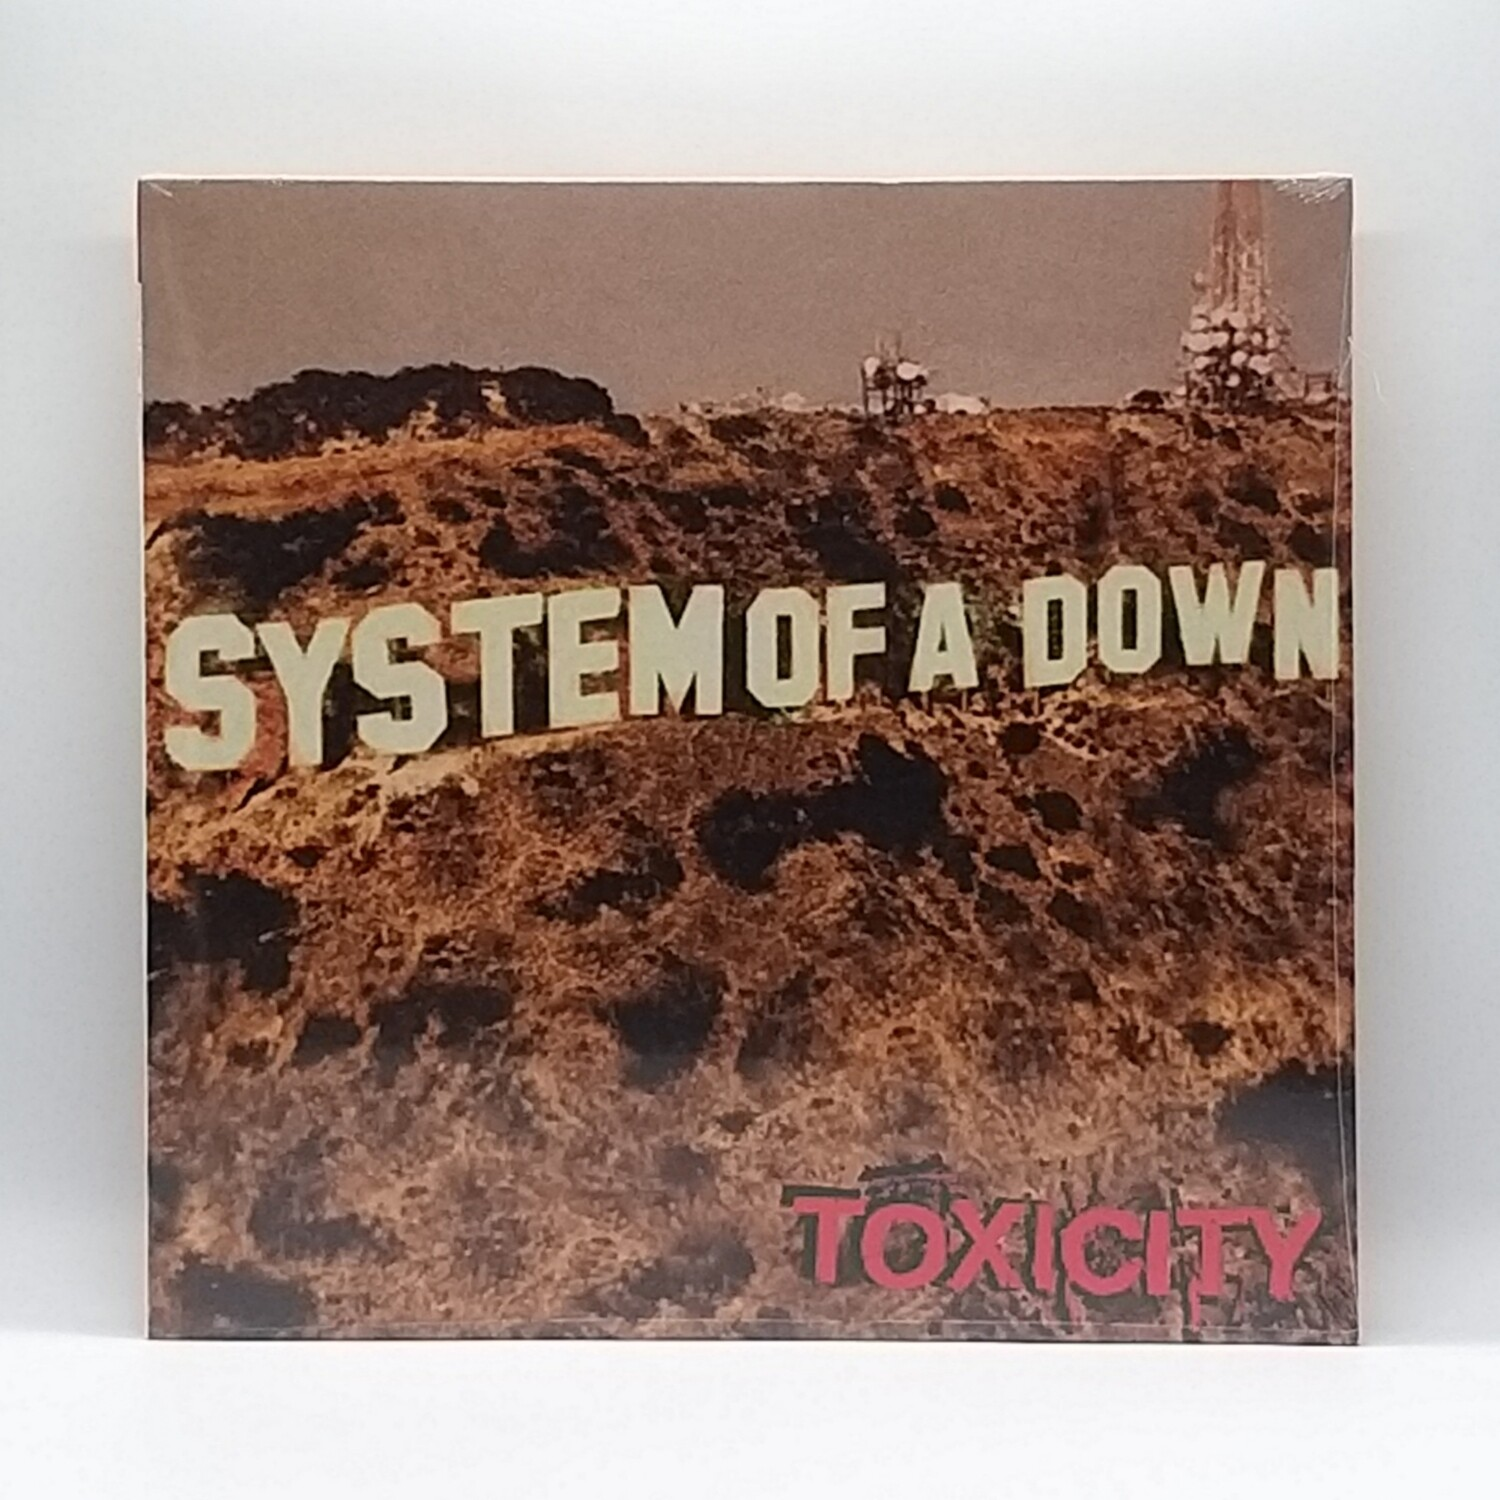 SYSTEM OF A DOWN -TOXICITY- LP